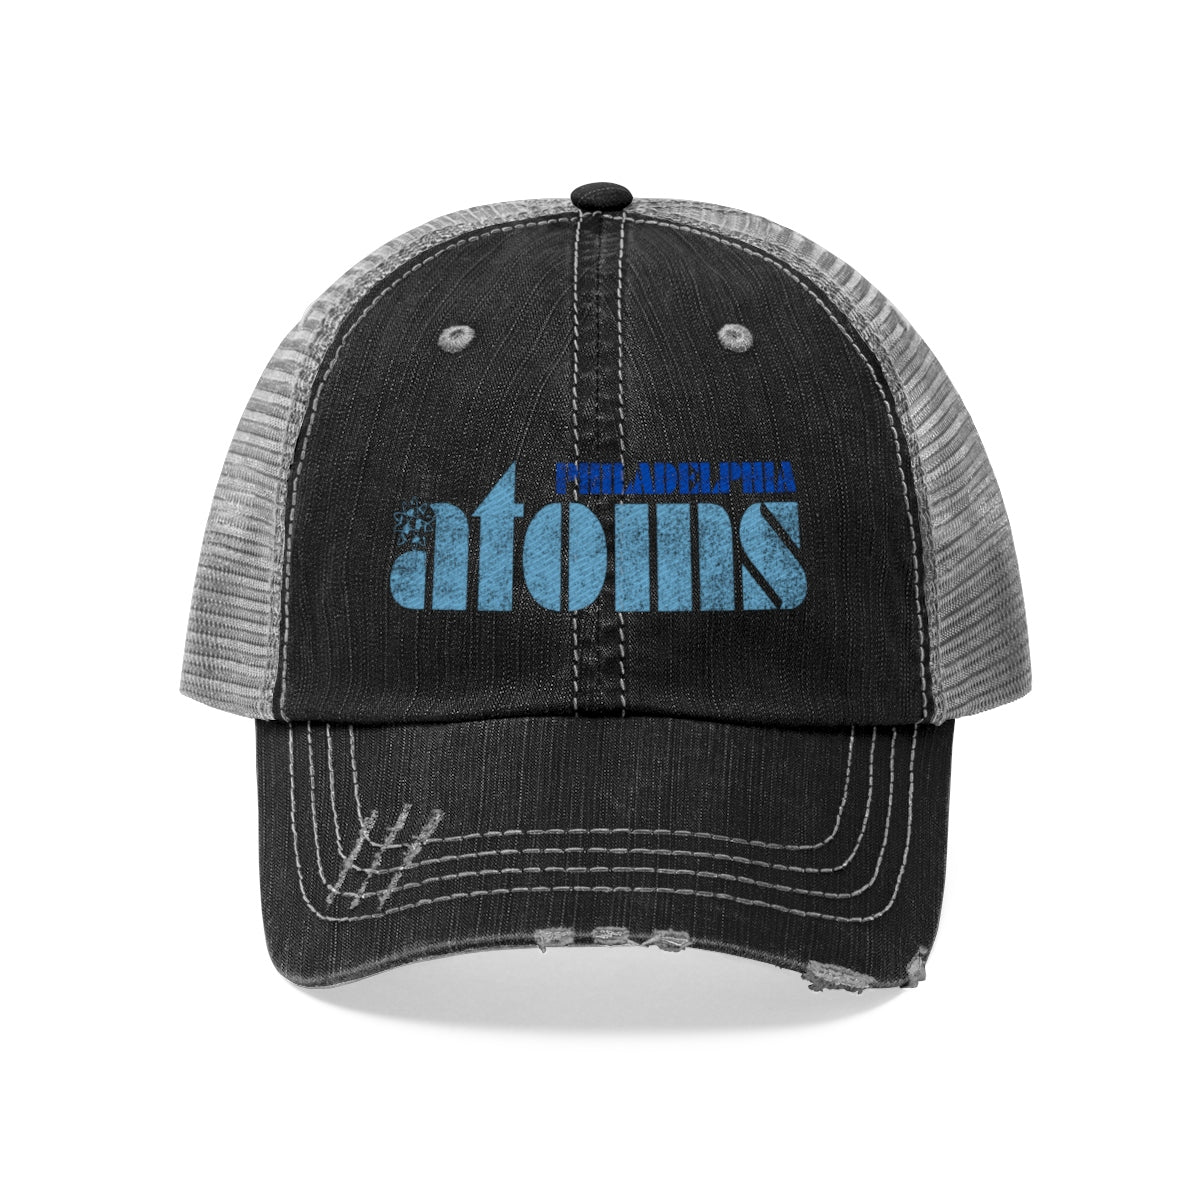 Retro Philadelphia Atoms Unisex Trucker Hat